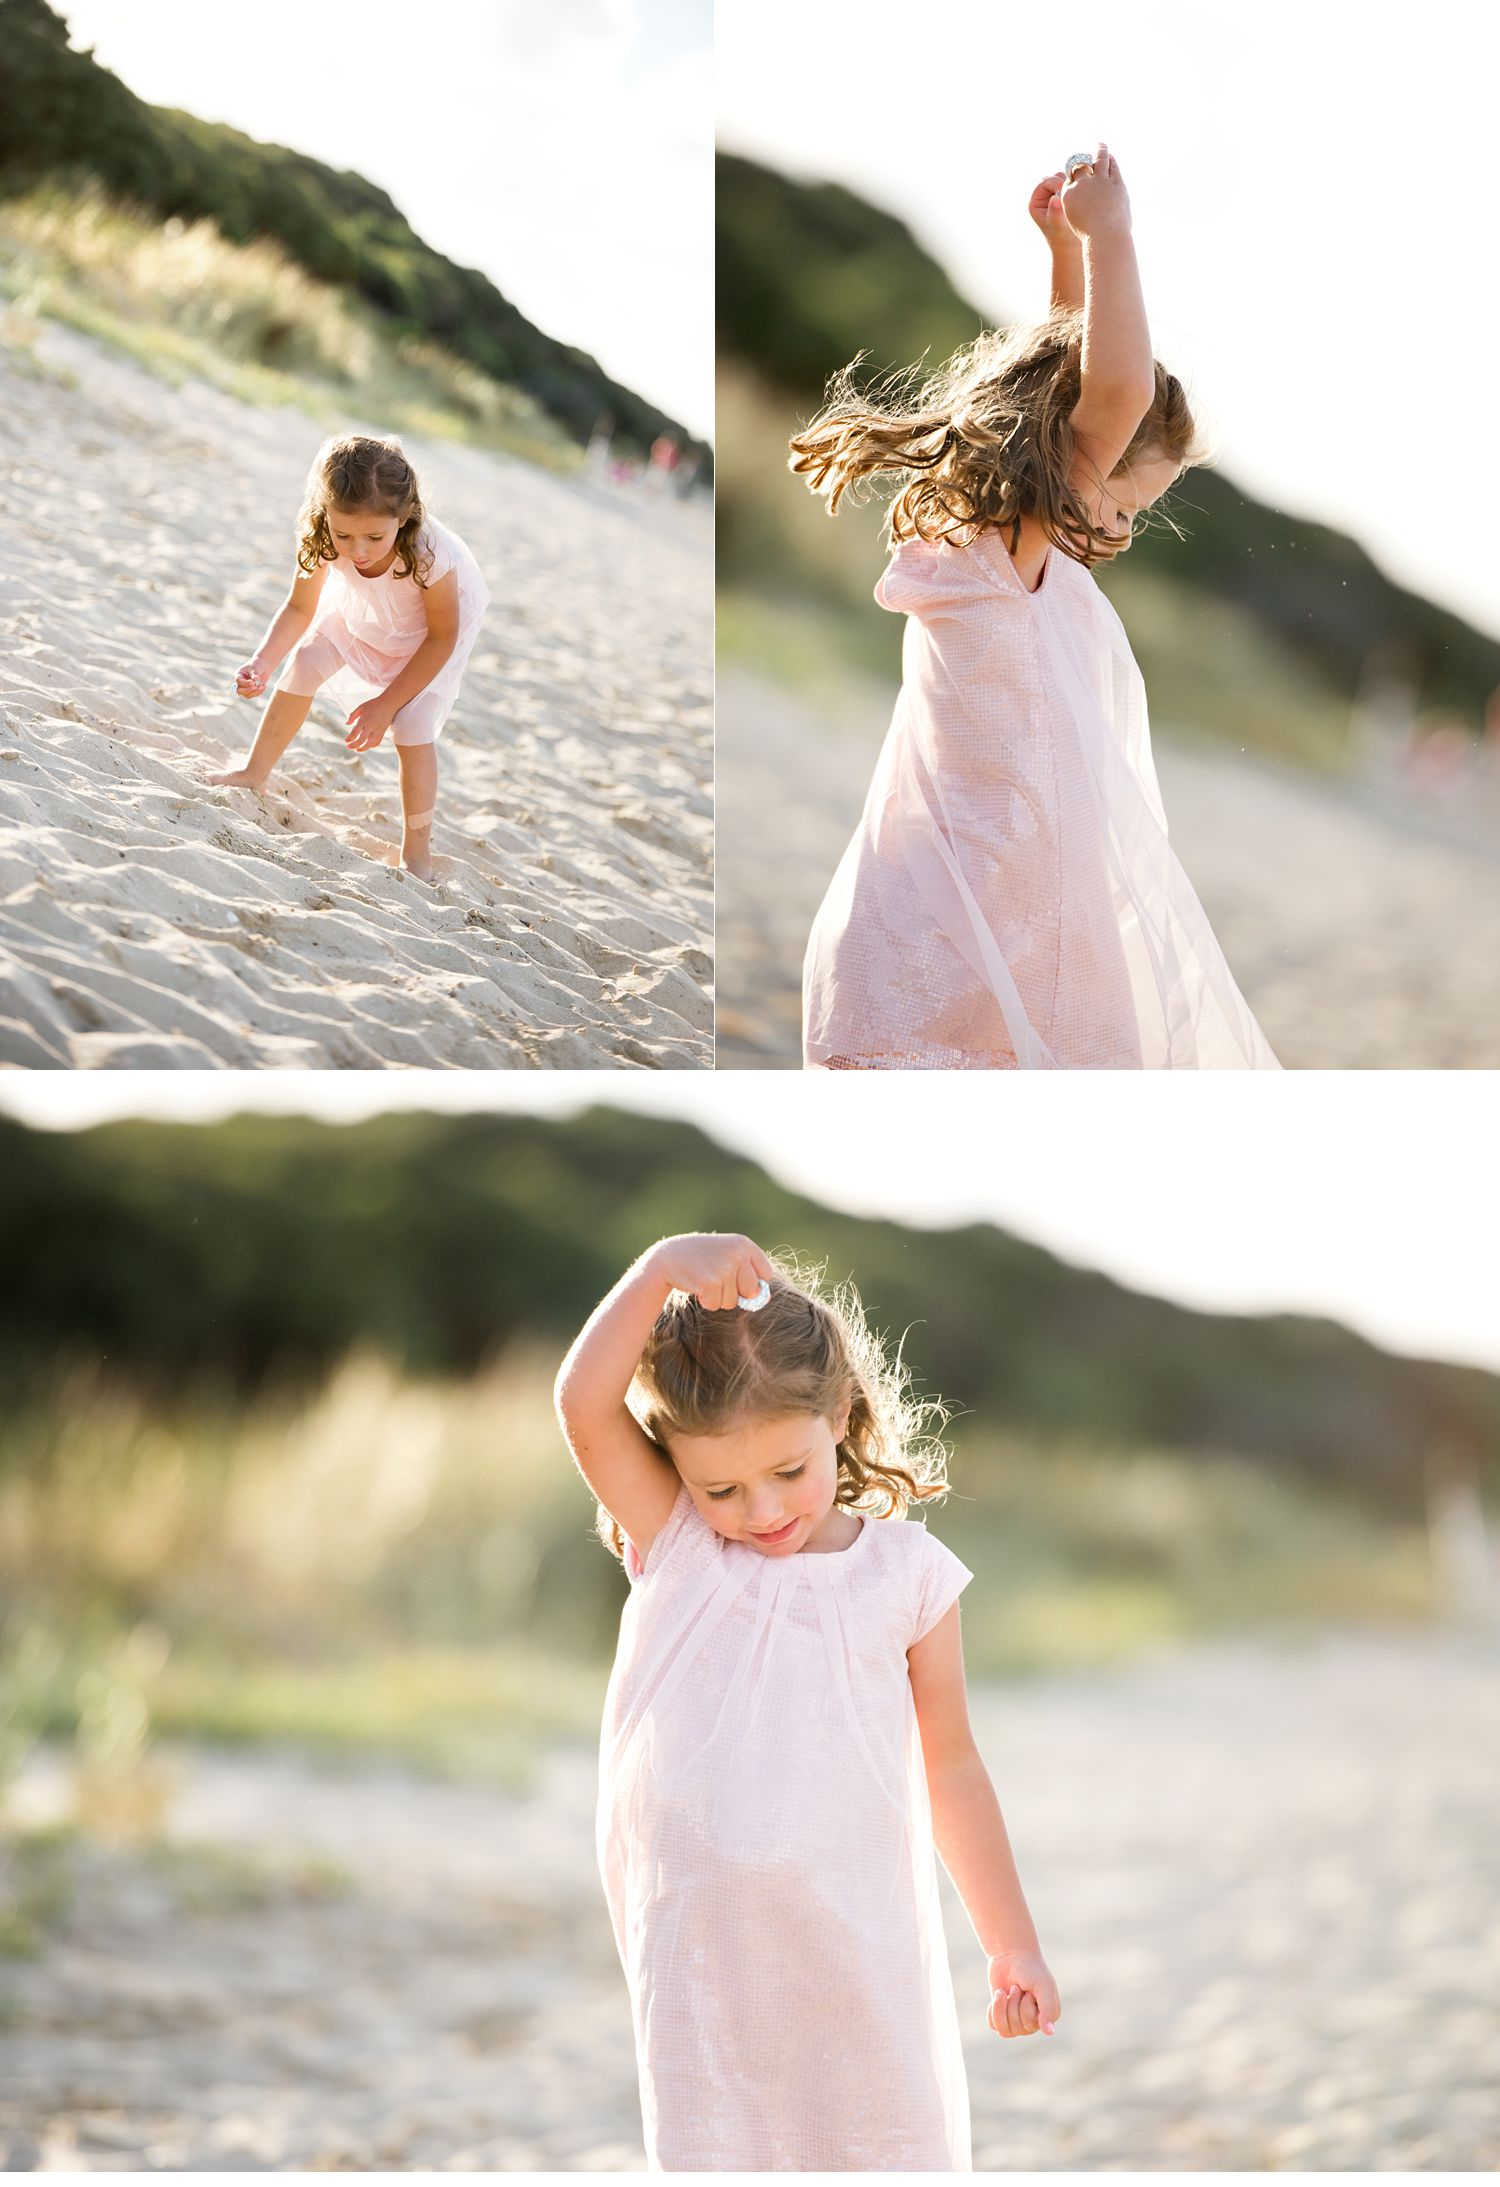 bec-stewart-photography-extended-family-photography-session-melbourne-australia-city-of-casey-73.jpg